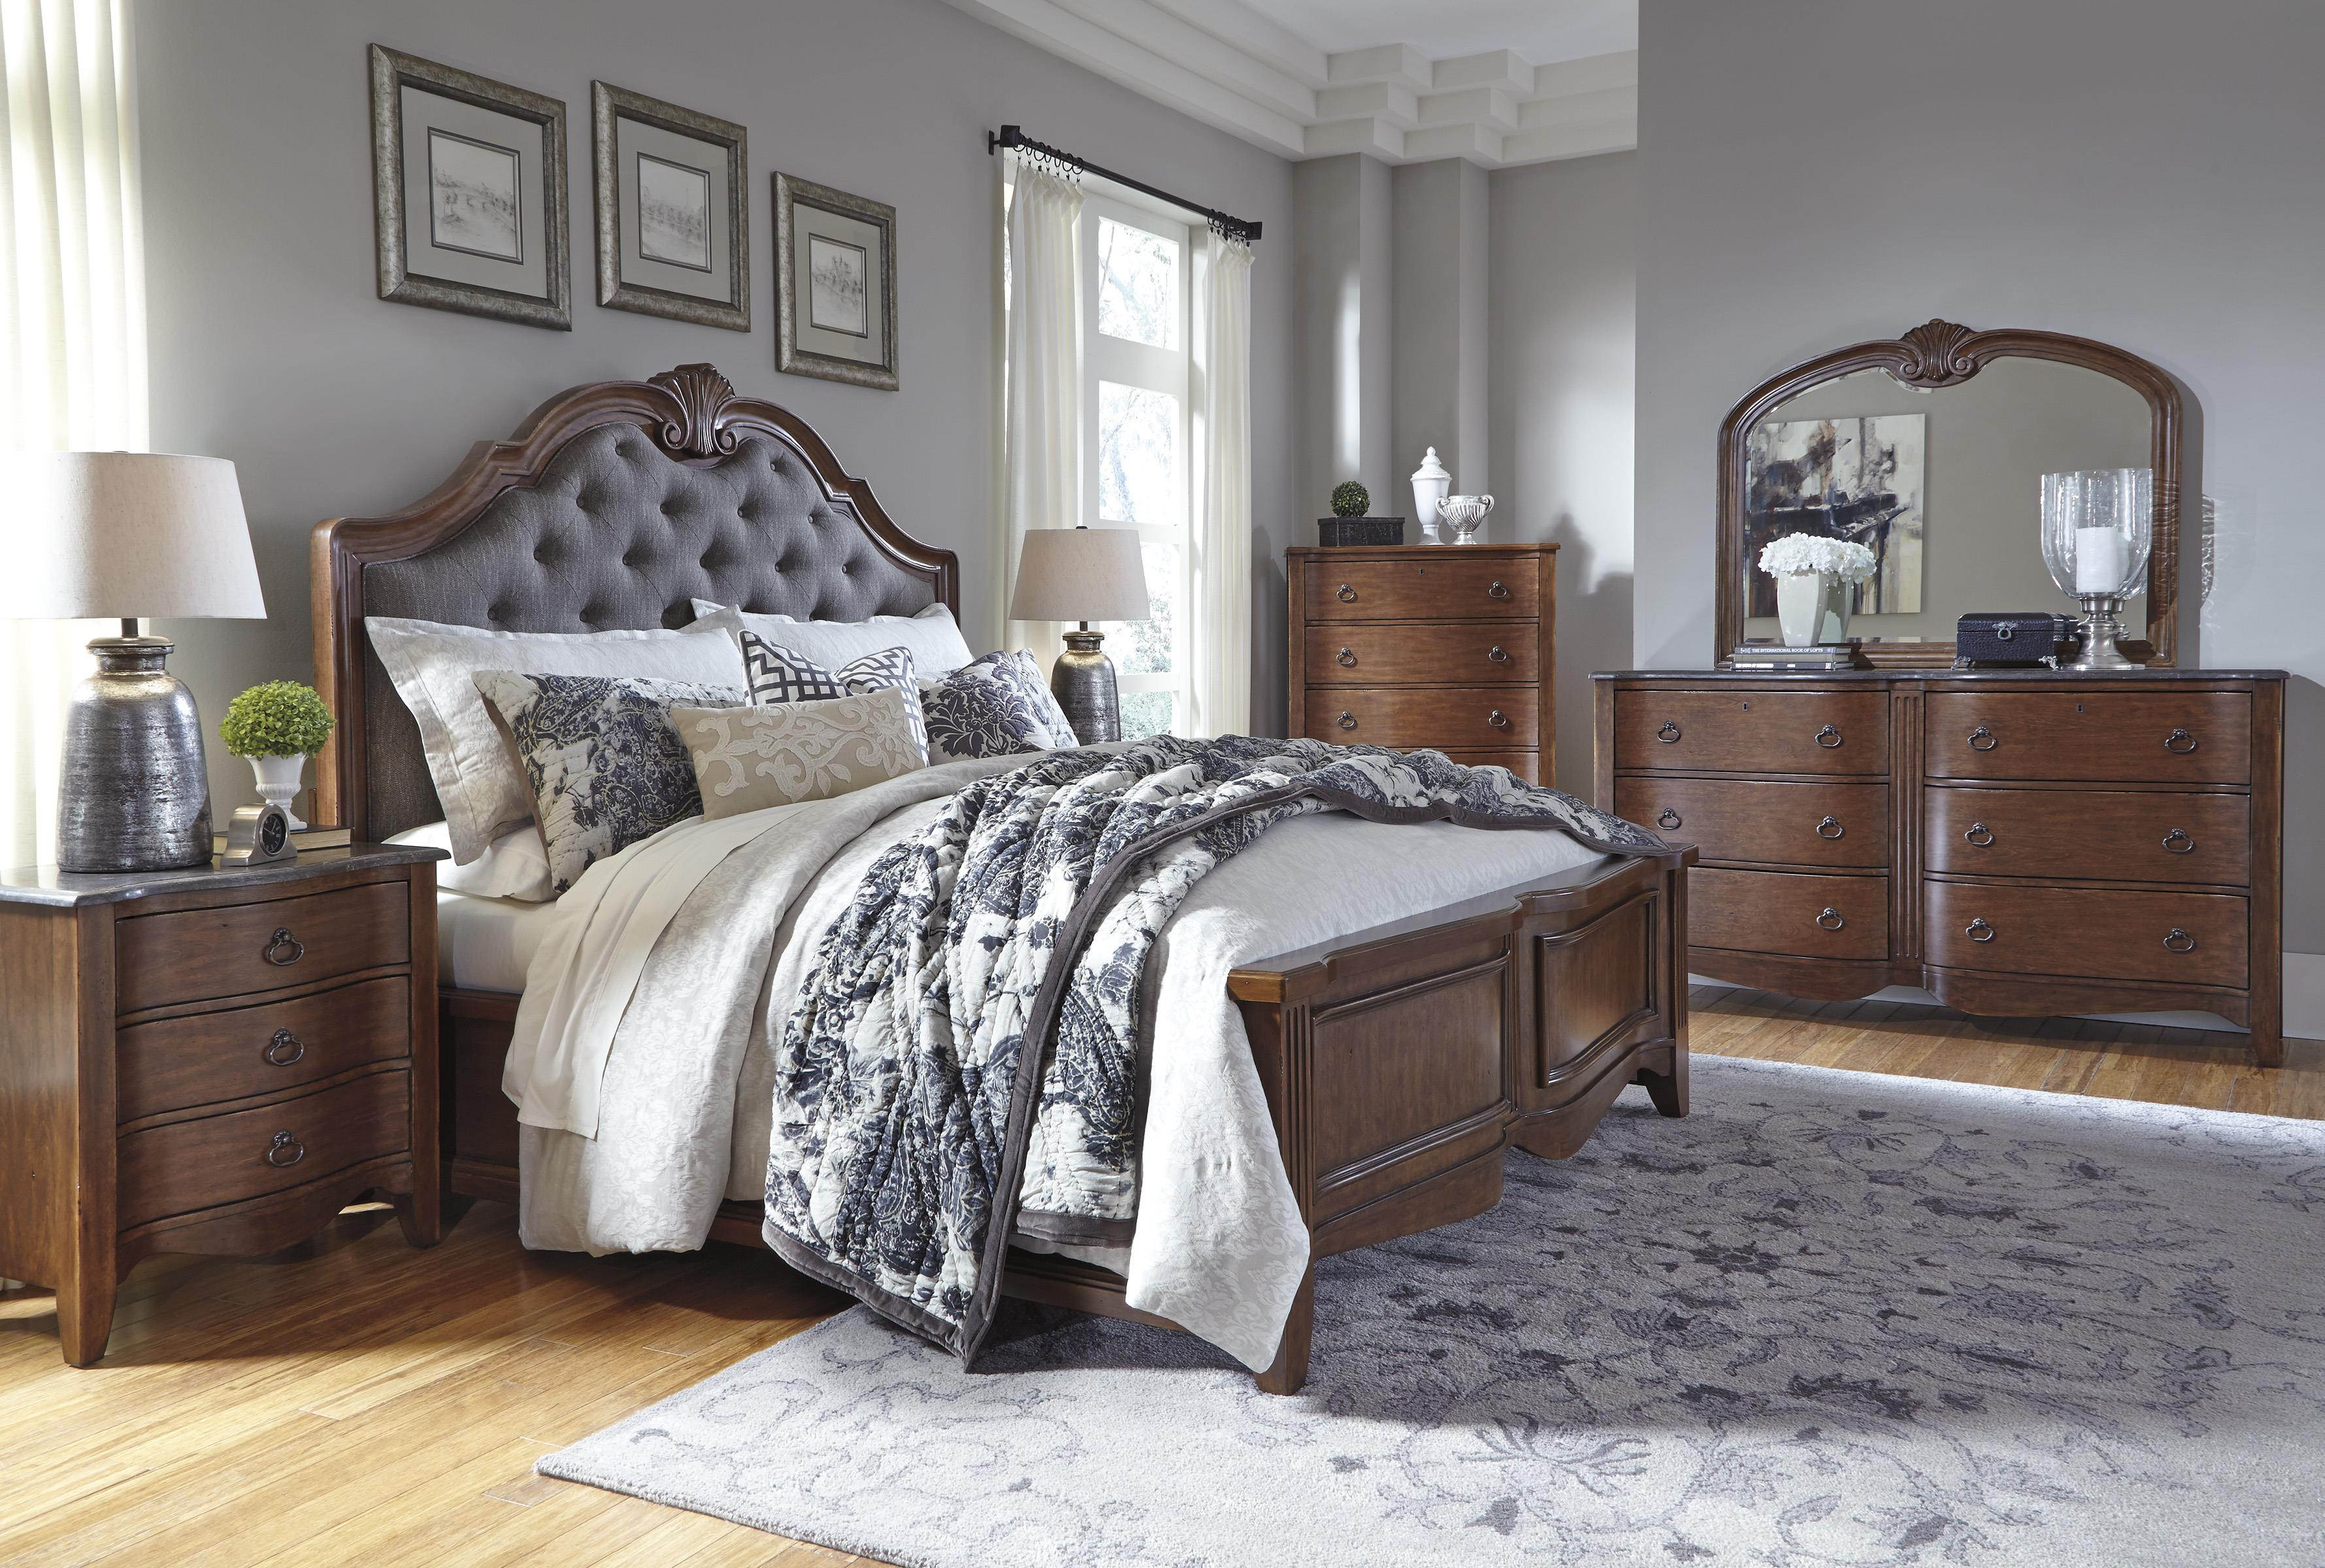 Signature Design by Ashley Balinder Transitional Dresser with Serpentine Drawers and Bluestone ...